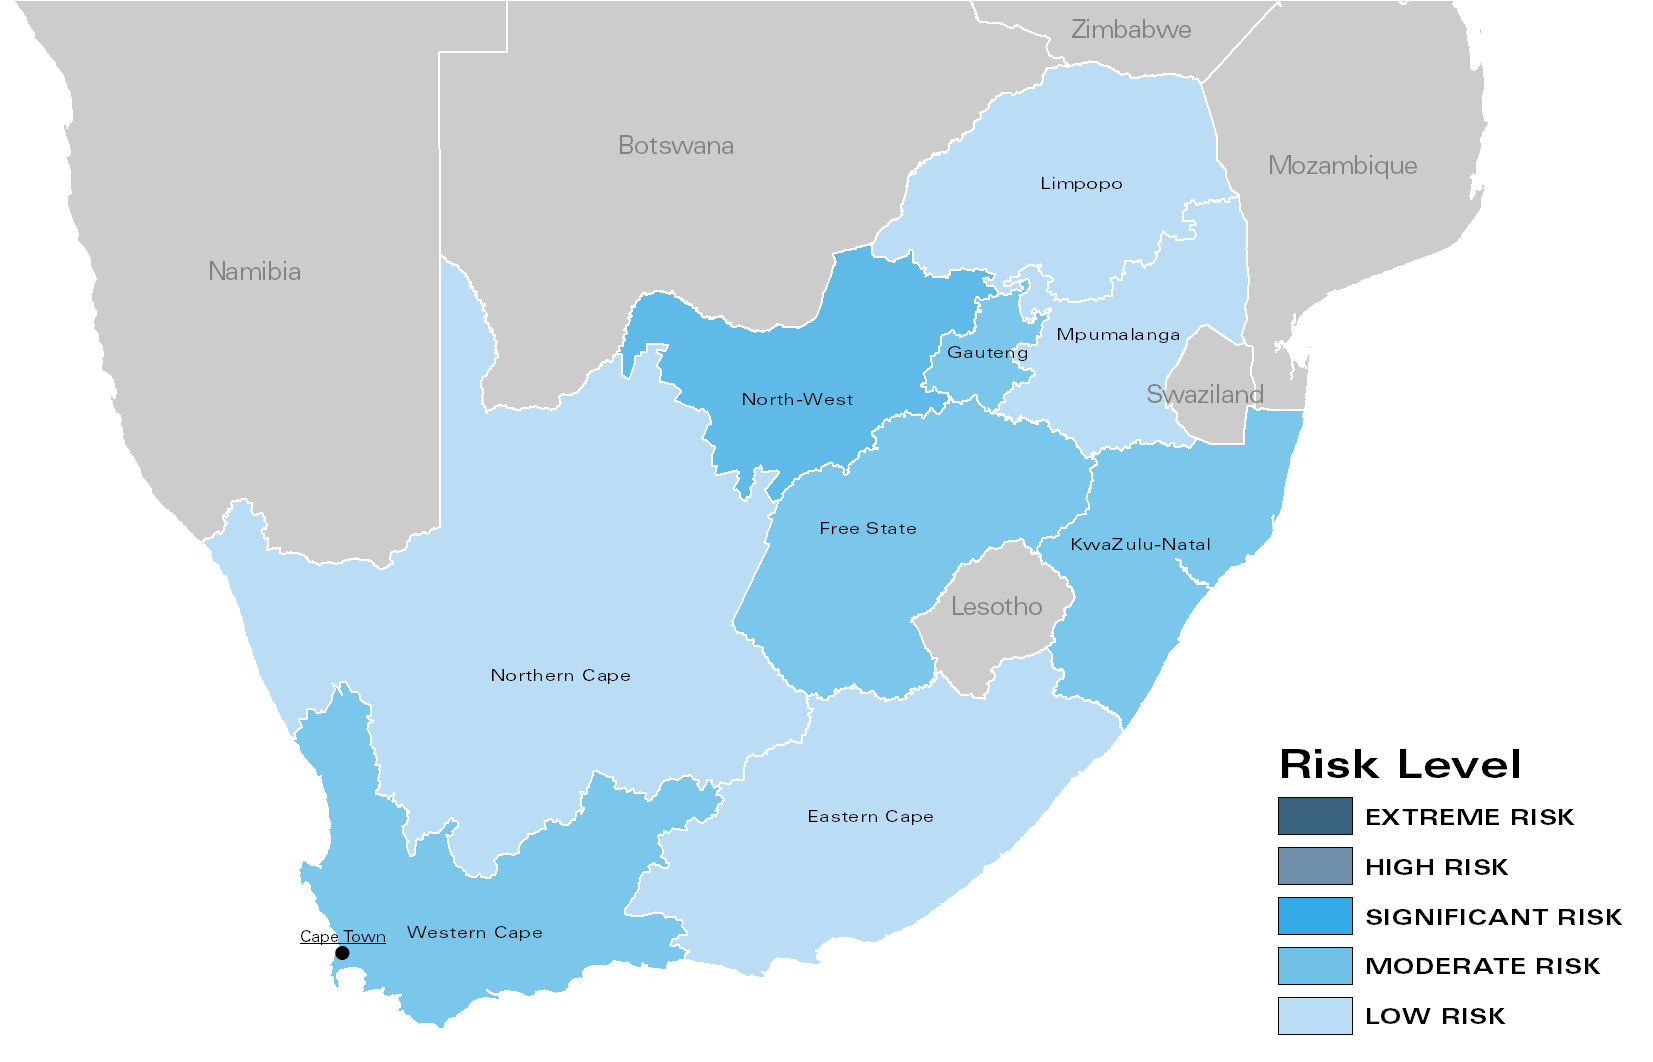 Fig. 2: Regional Risk Levels for South Africa in February 2018 (all conflicts)